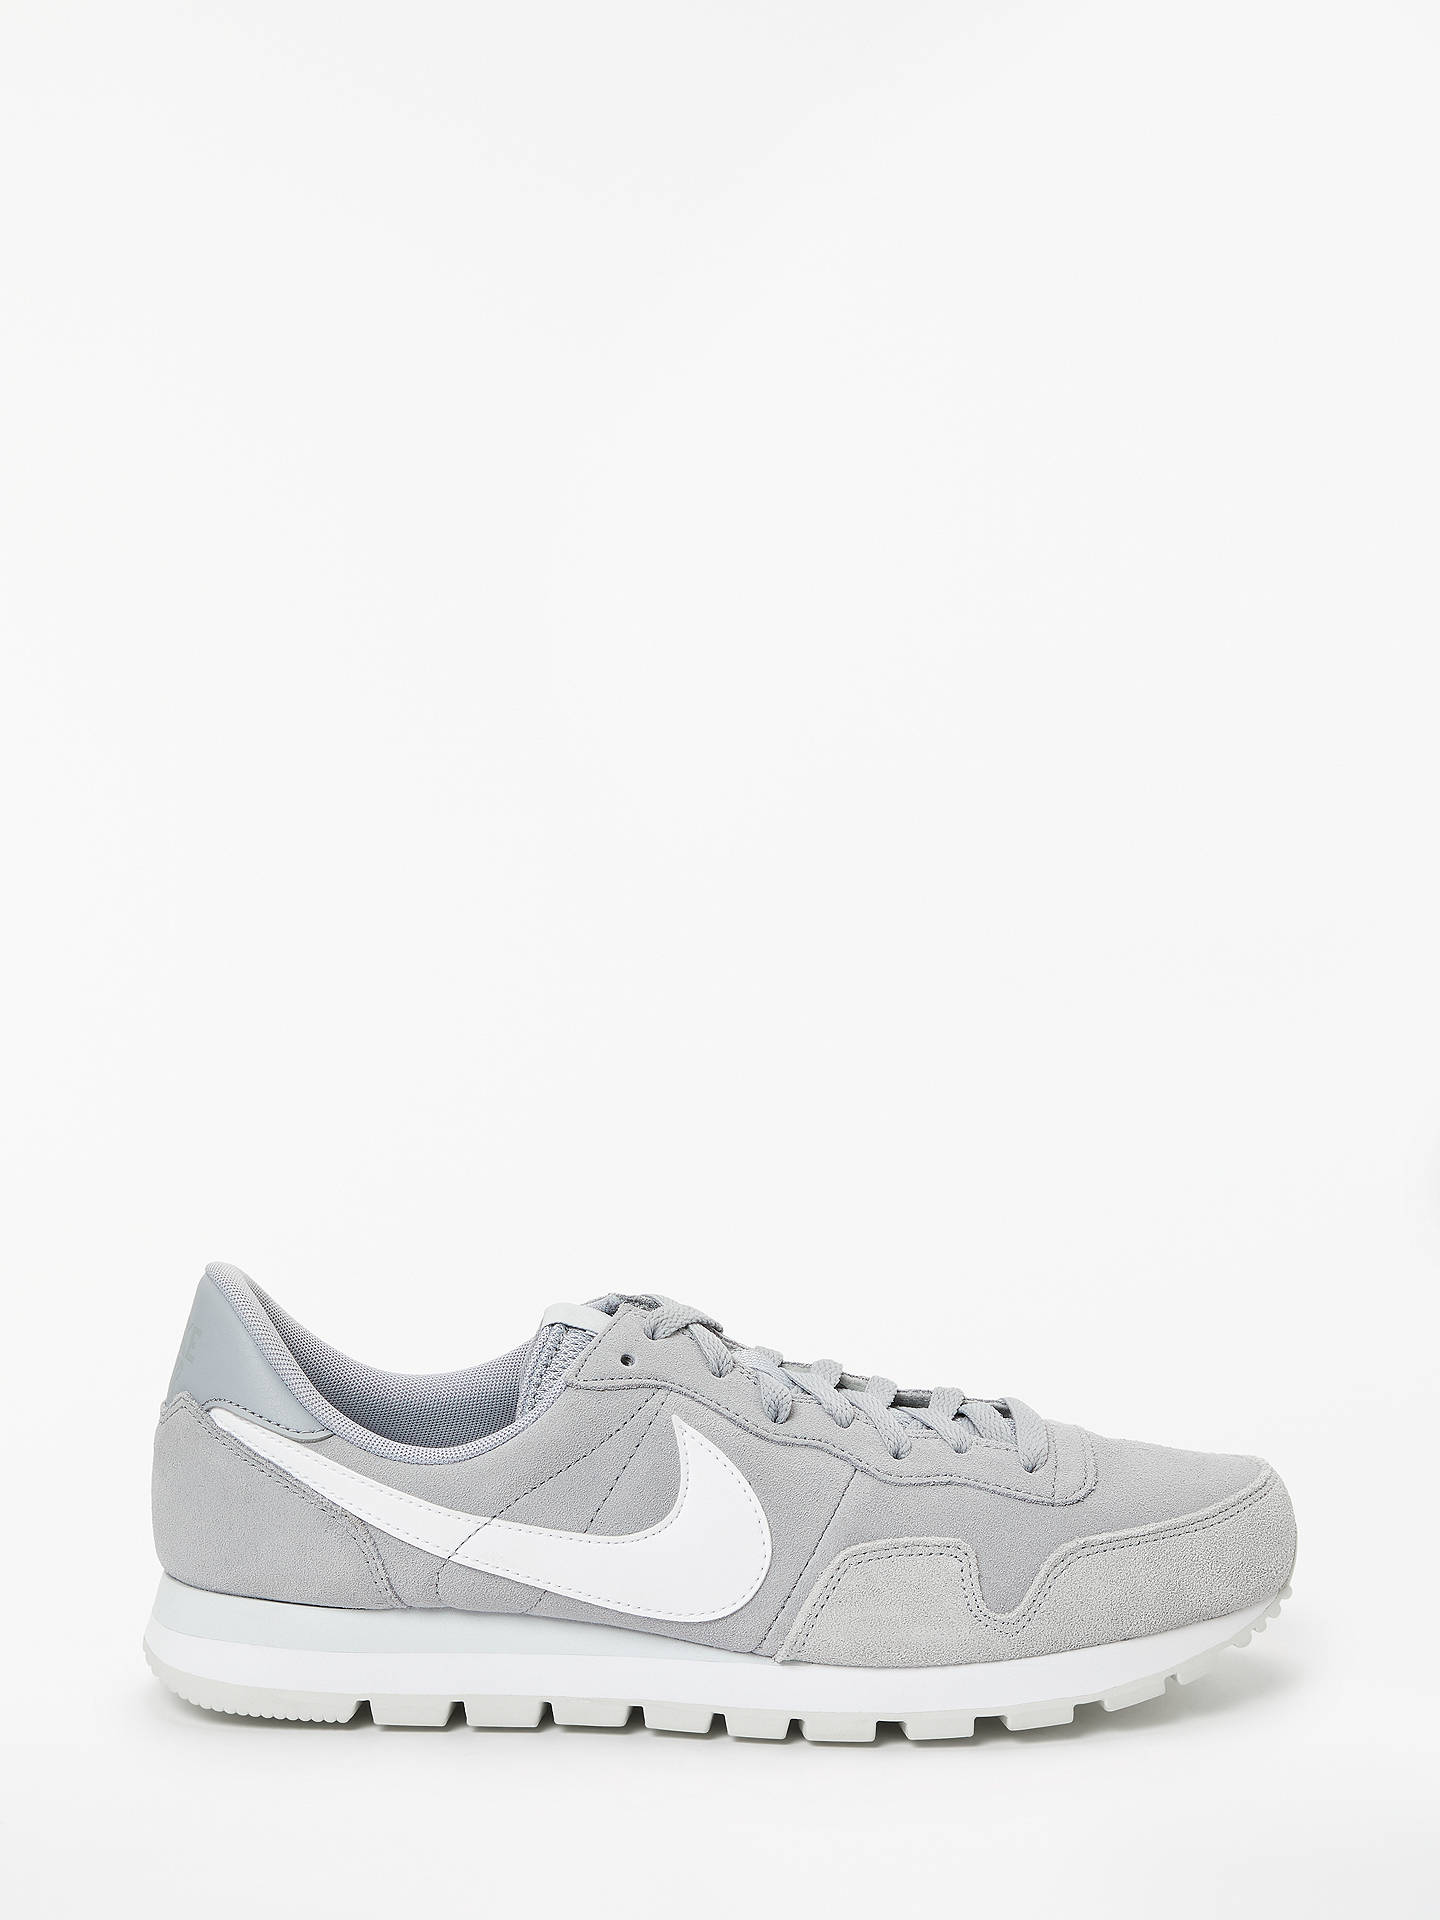 5a73313965da2 Nike Air Pegasus 83 Men s Trainers at John Lewis   Partners